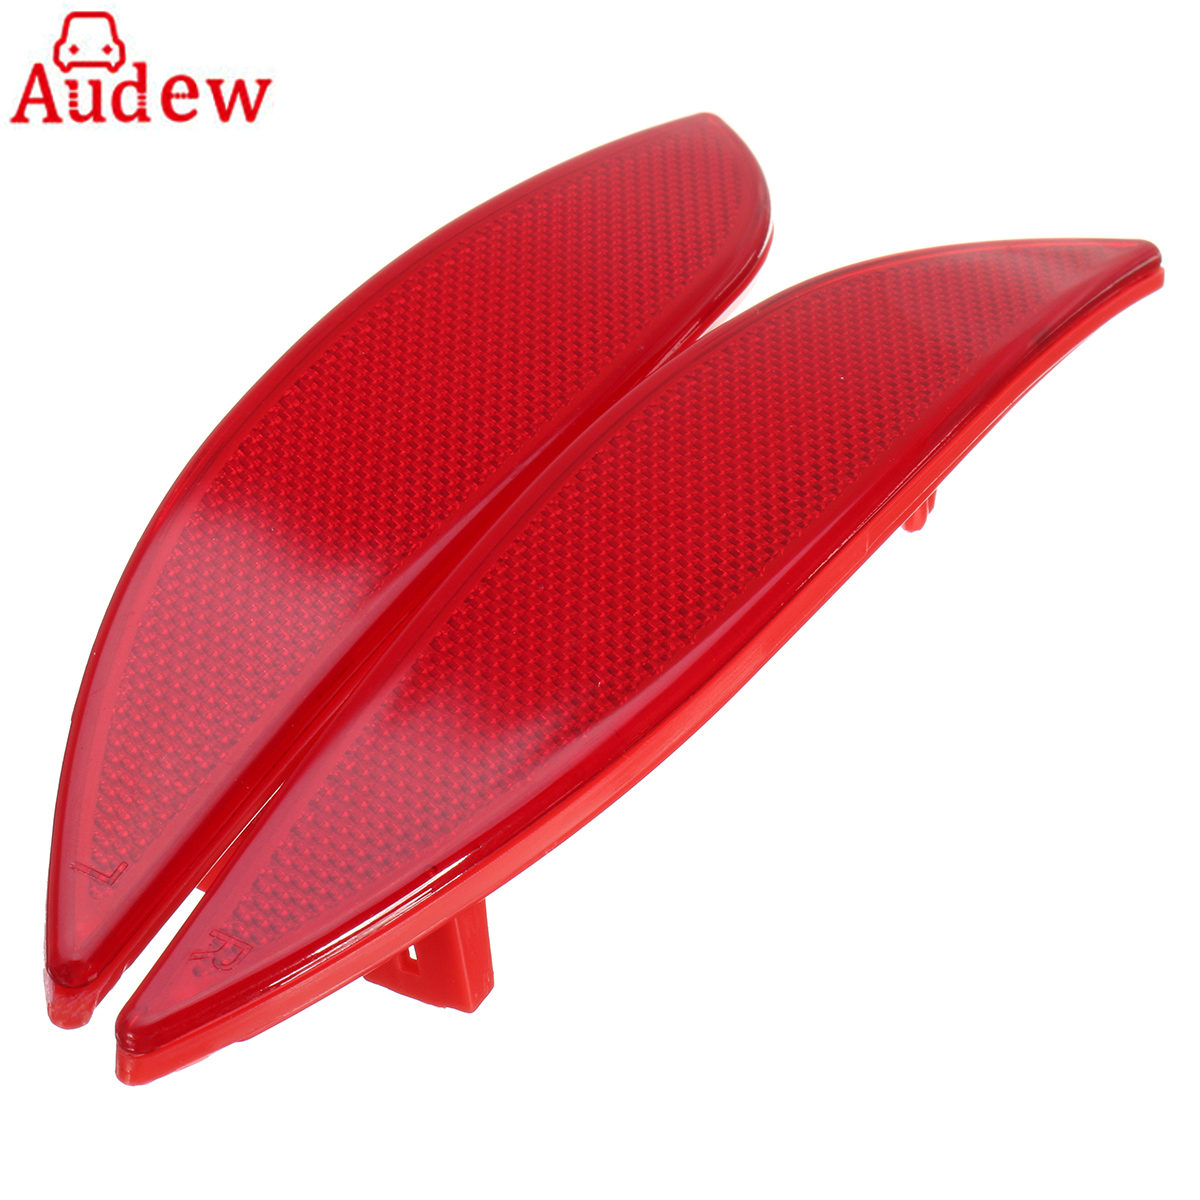 1Pcs Red Car Rear Bumper Reflector Light Lens Left / Right Side For Renault Megane MK3 цена